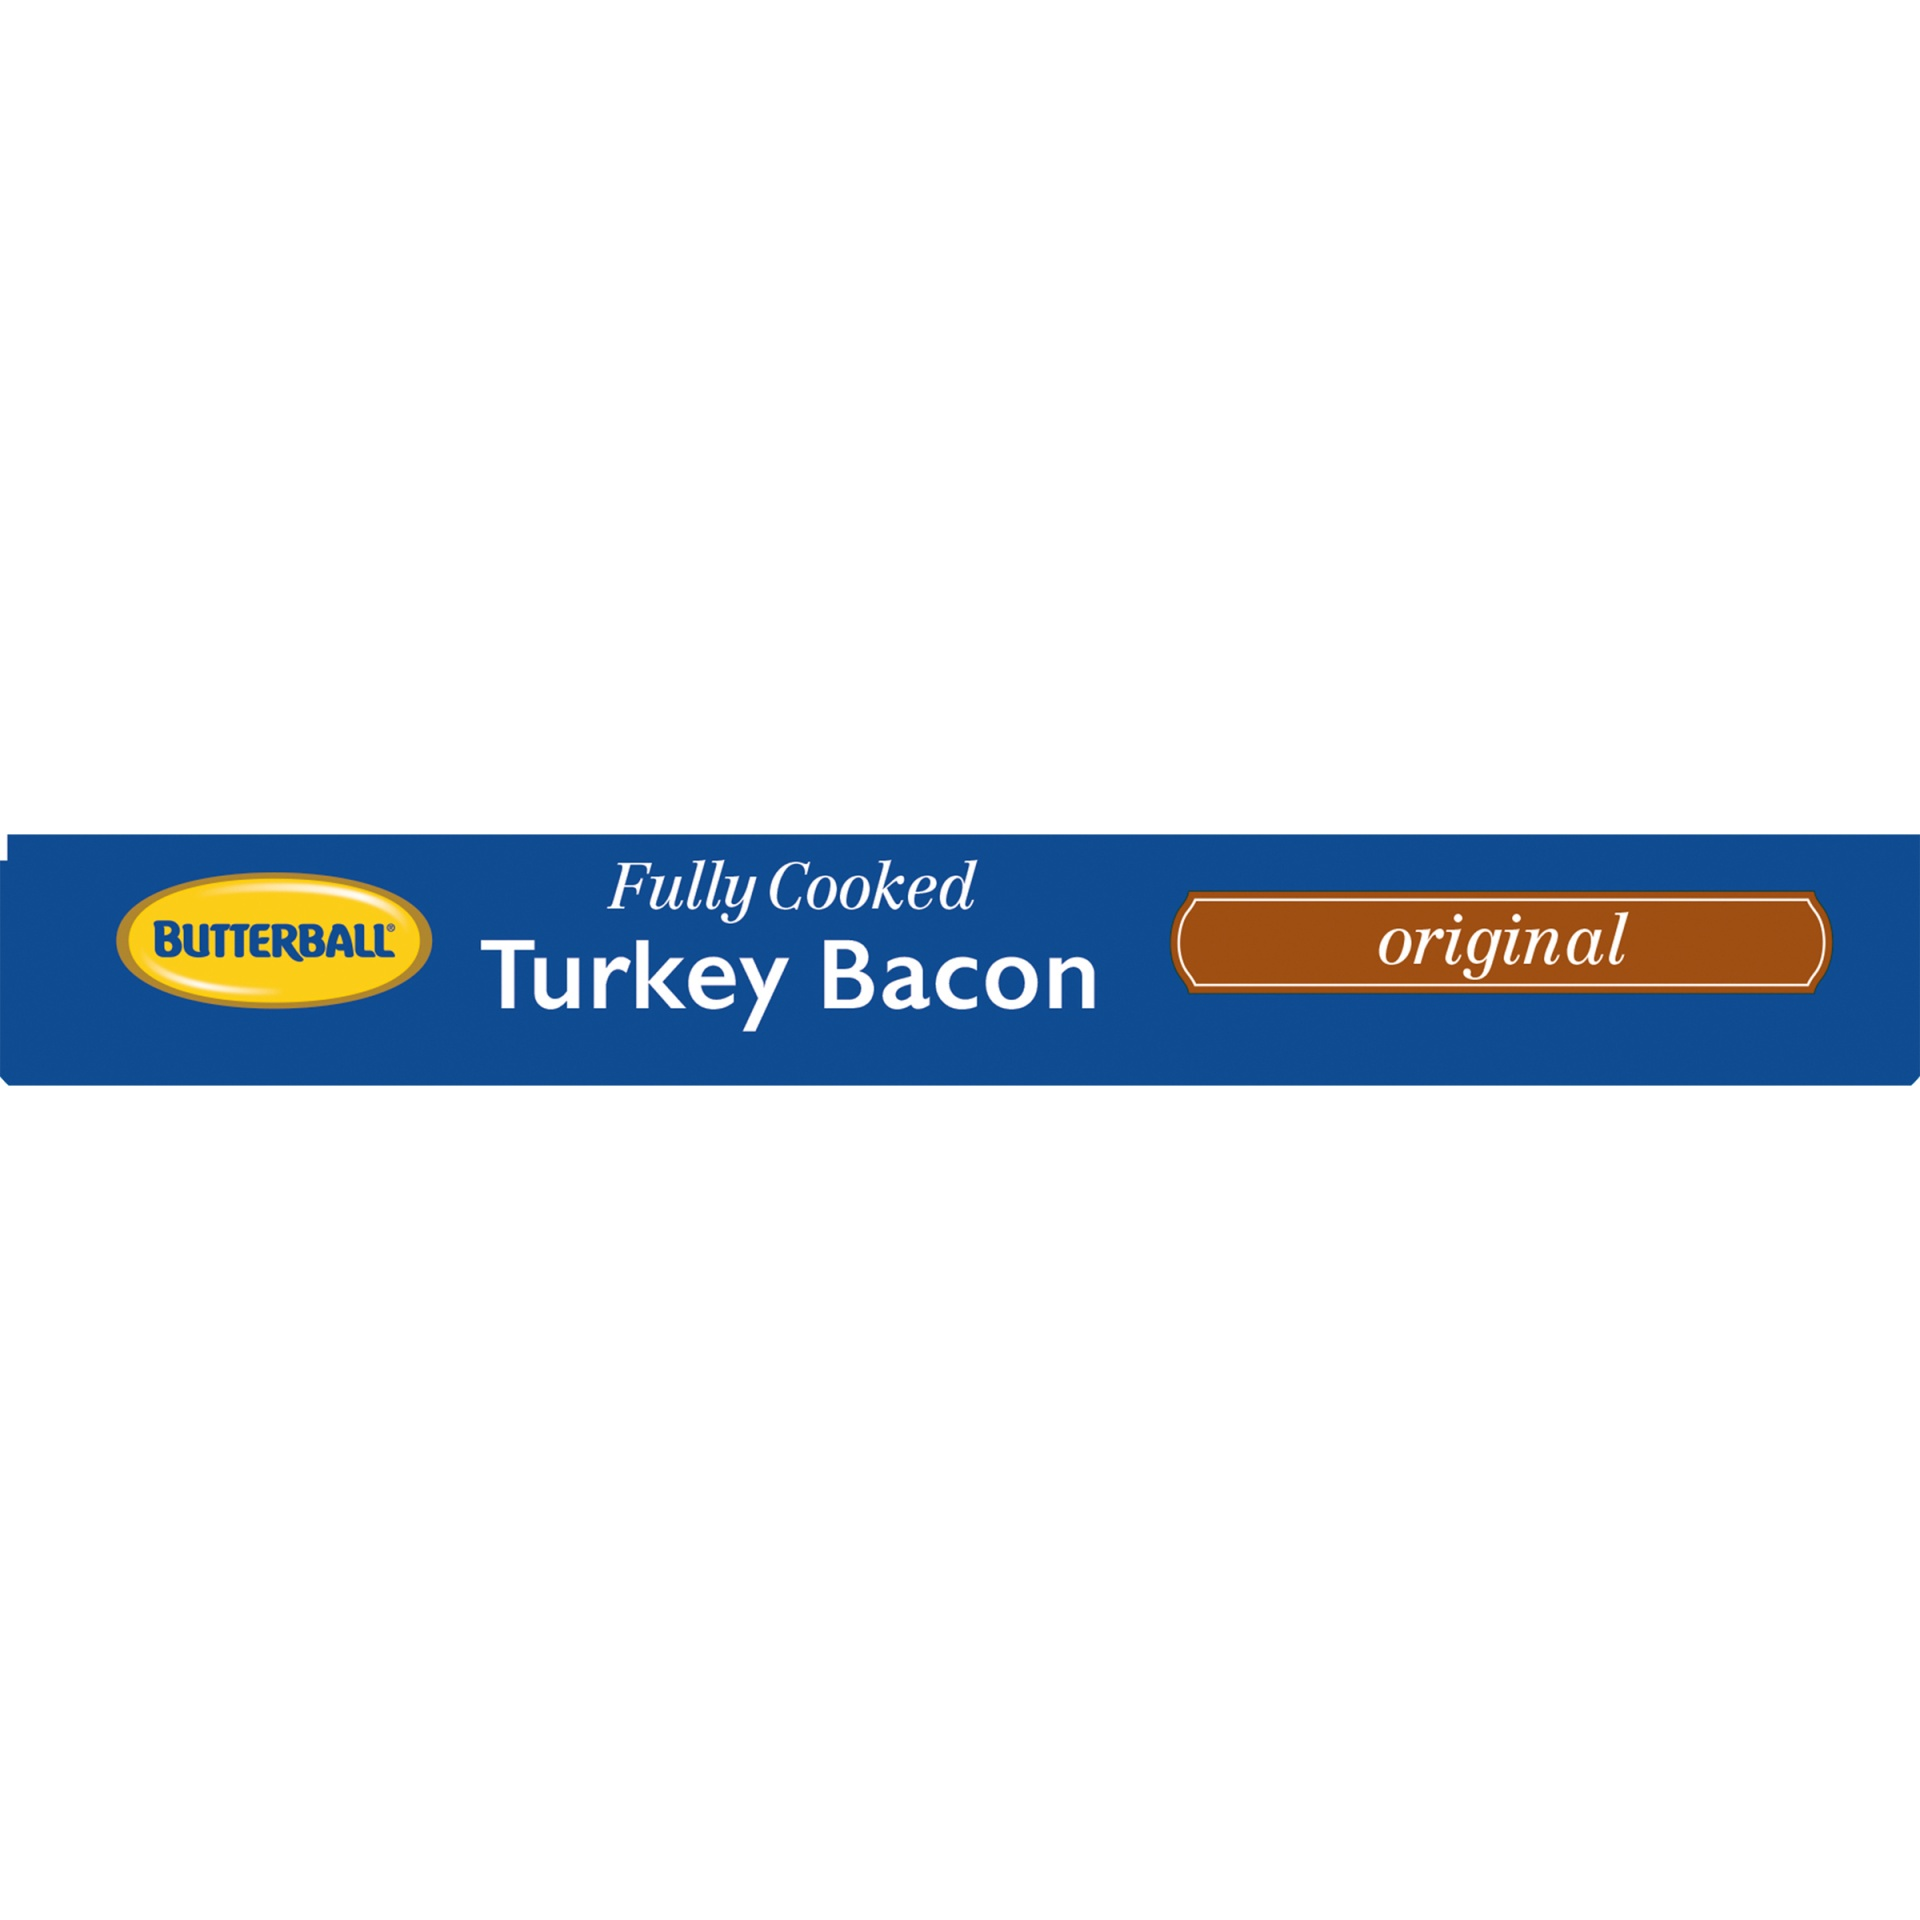 slide 4 of 8, Butterball Every Day Original Fully Cooked Turkey Bacon,